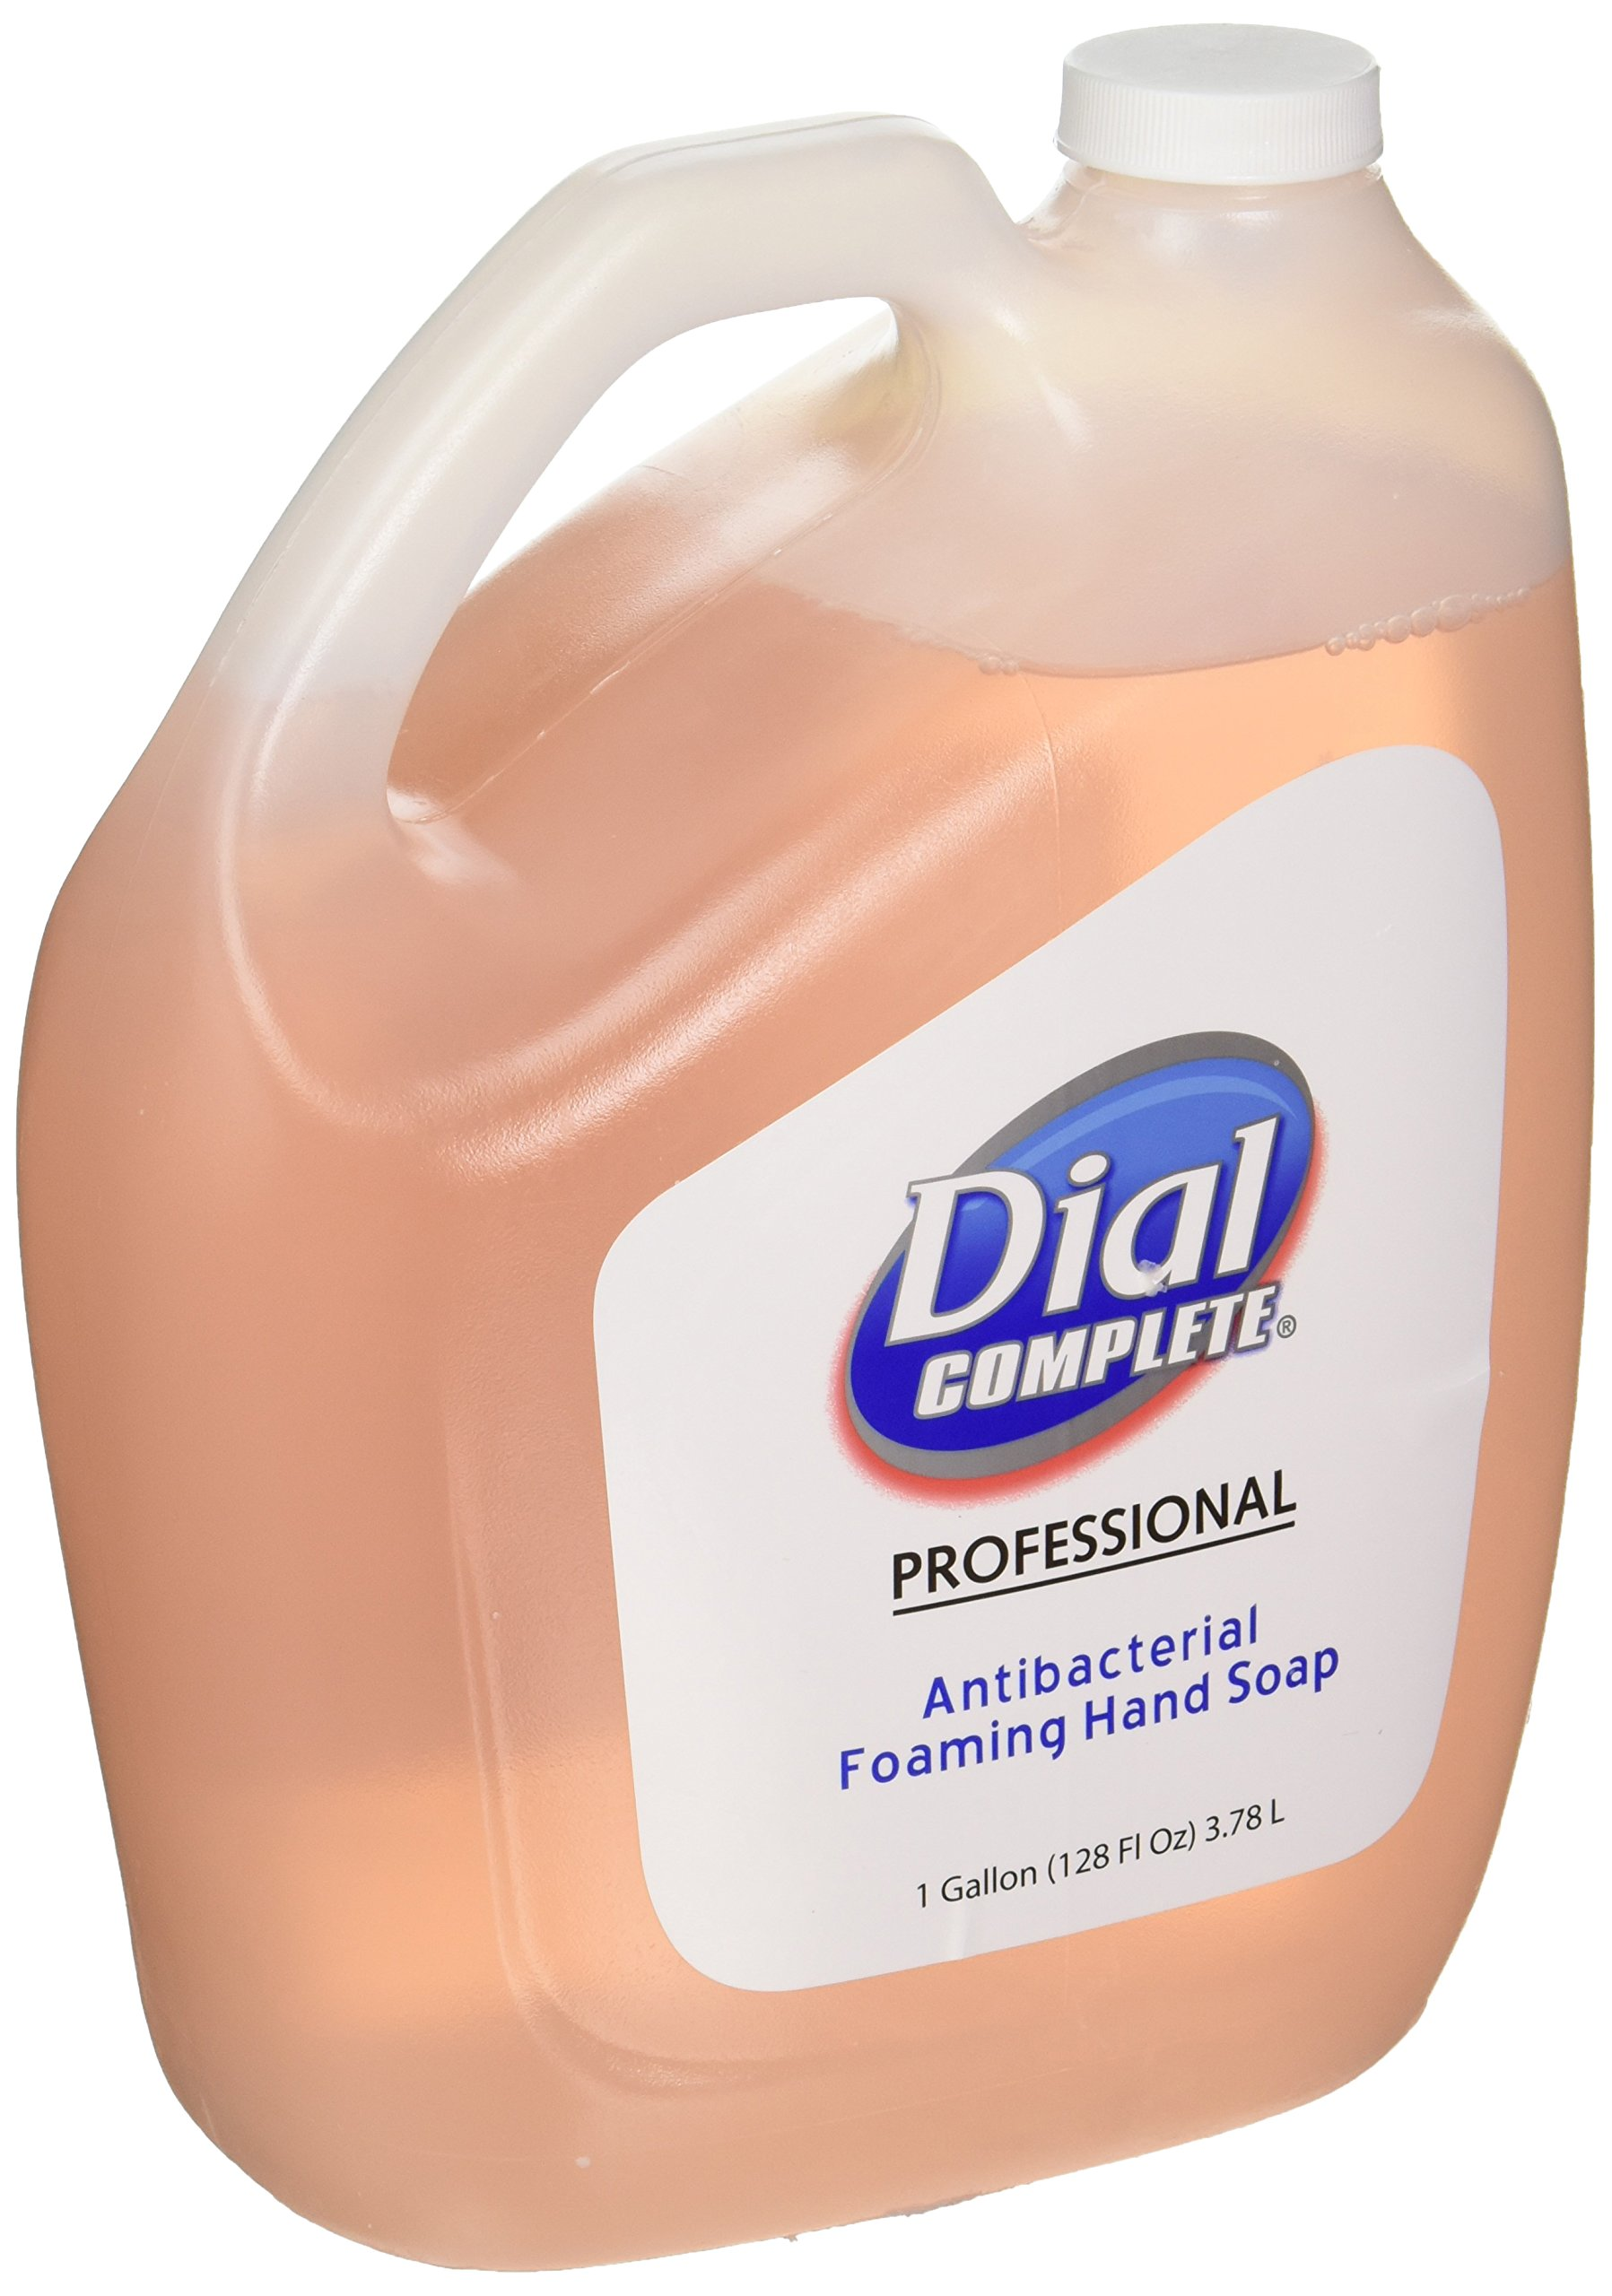 Dial Professional - Antimicrobial Foaming Hand Soap Original Scent 1Gal ''Product Category: Breakroom And Janitorial/Hand Cleaners''